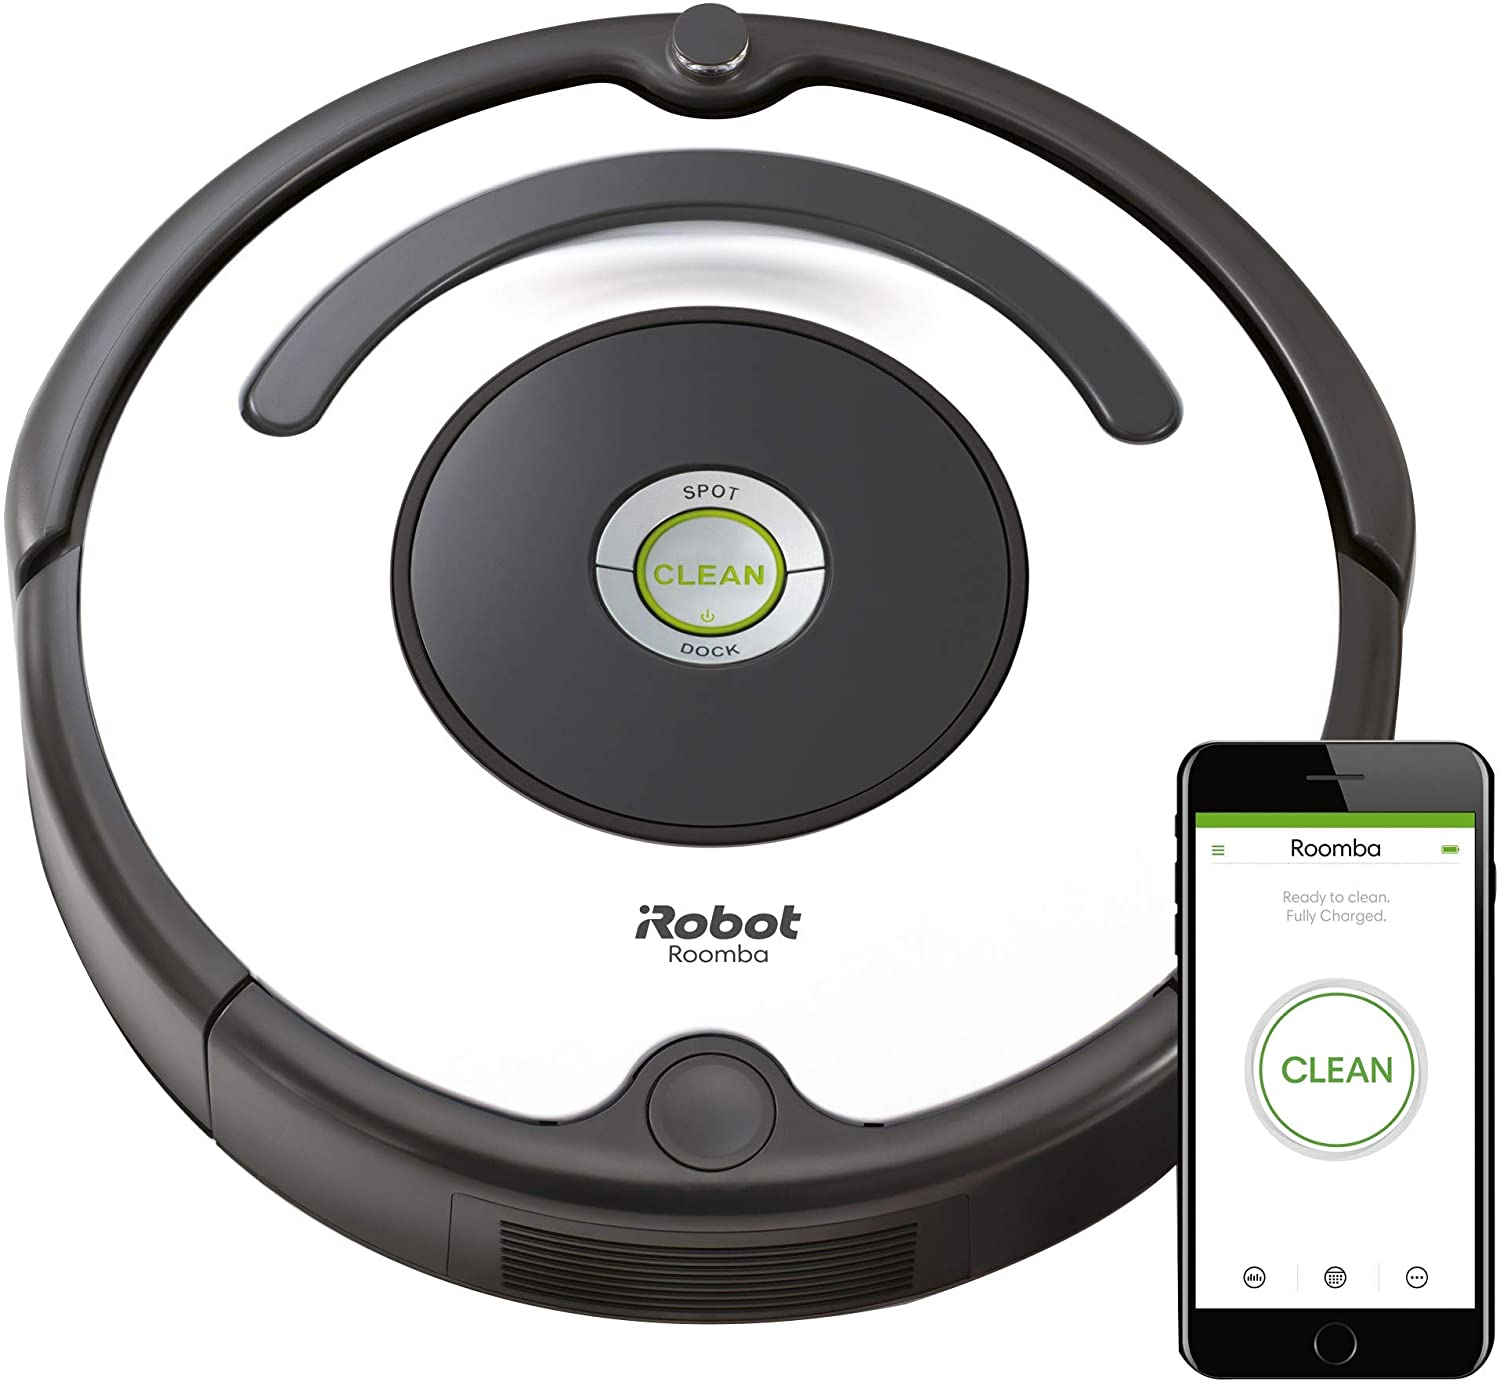 Roomba 670 Vs Roomba 690 Vs Roomba 675 One Simple Click And Off It Goes